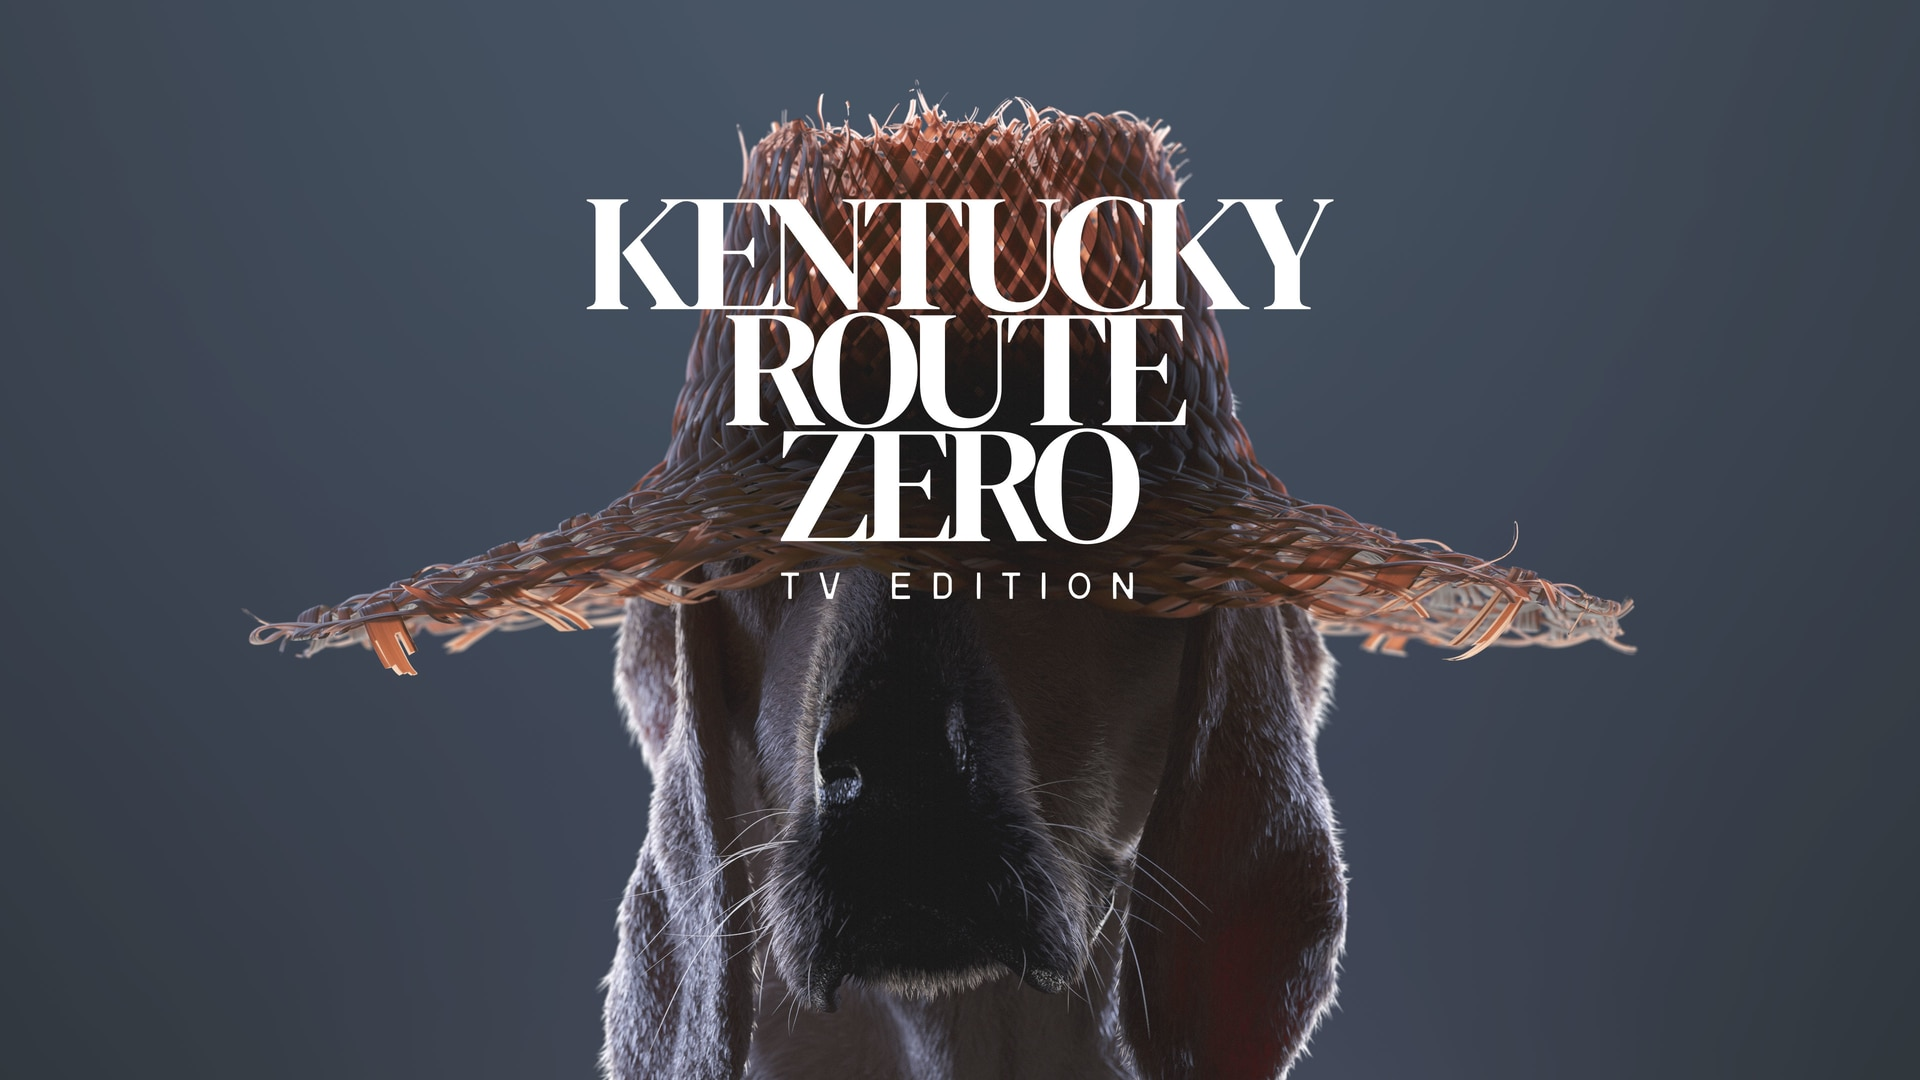 Kentucky Route Zero: TV Edition (English/Korean/Japanese Ver.)